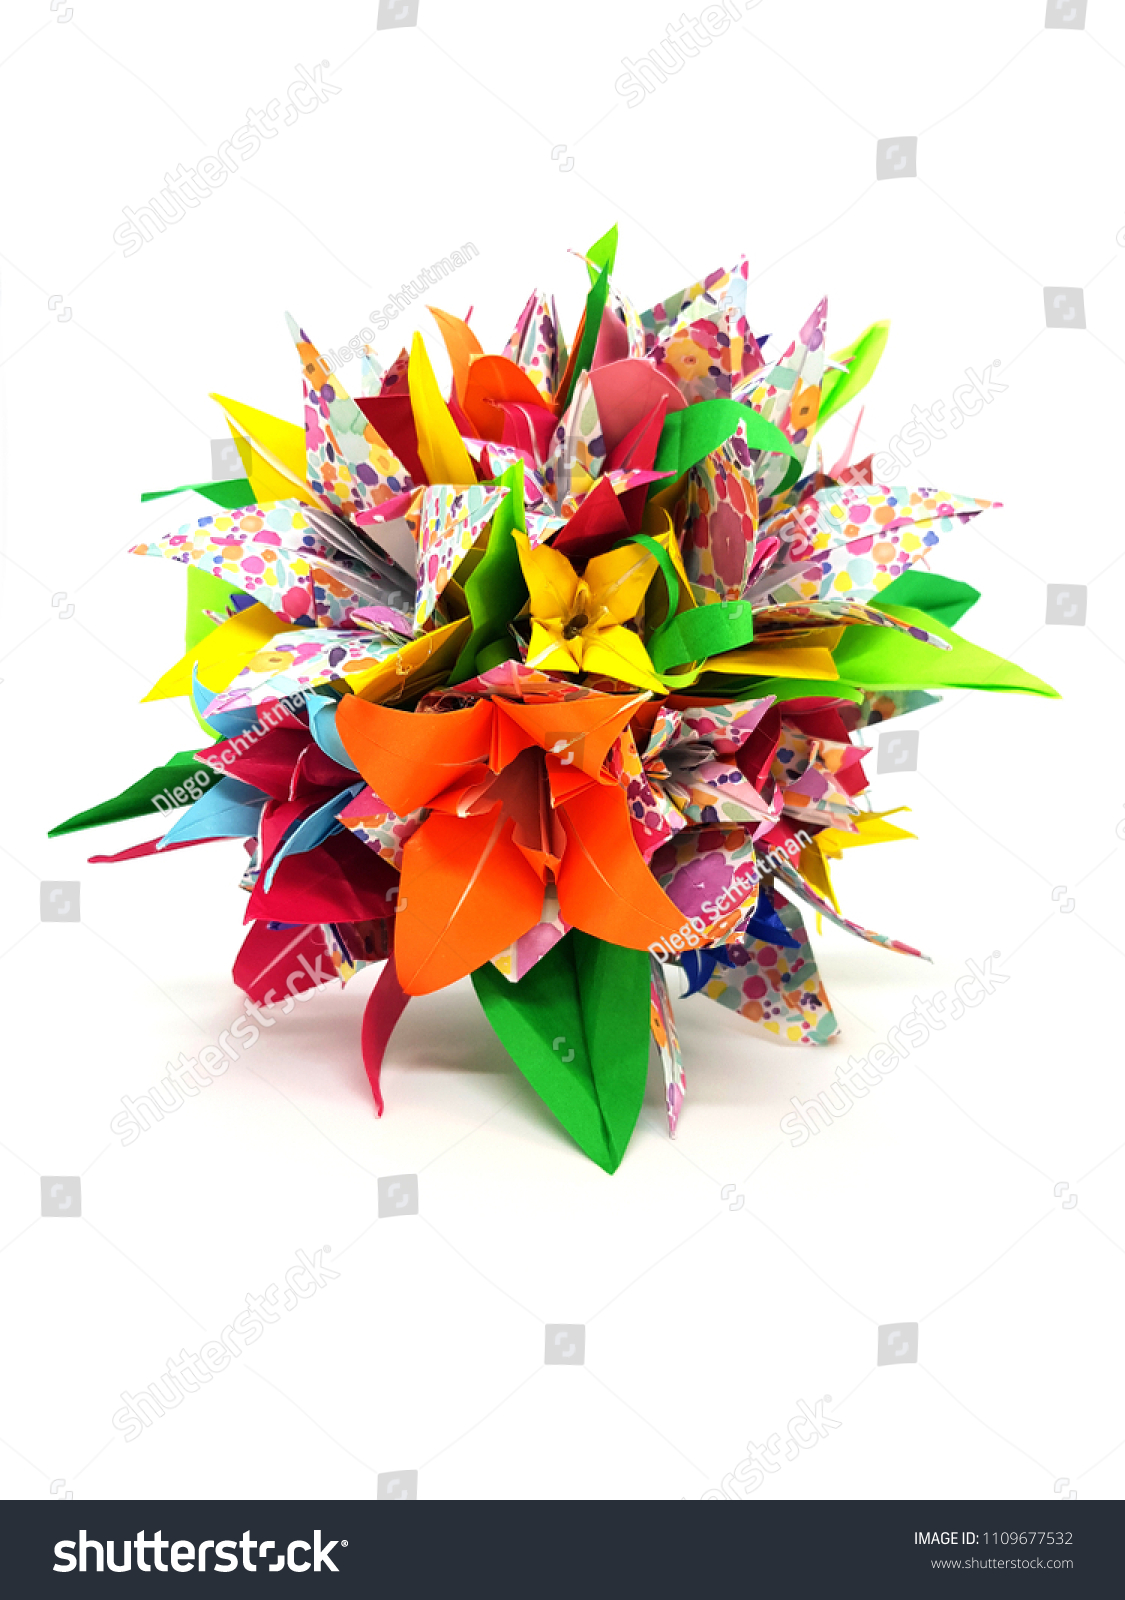 Photograph Colorful Origami Flower Arrangement Stock Photo Edit Now